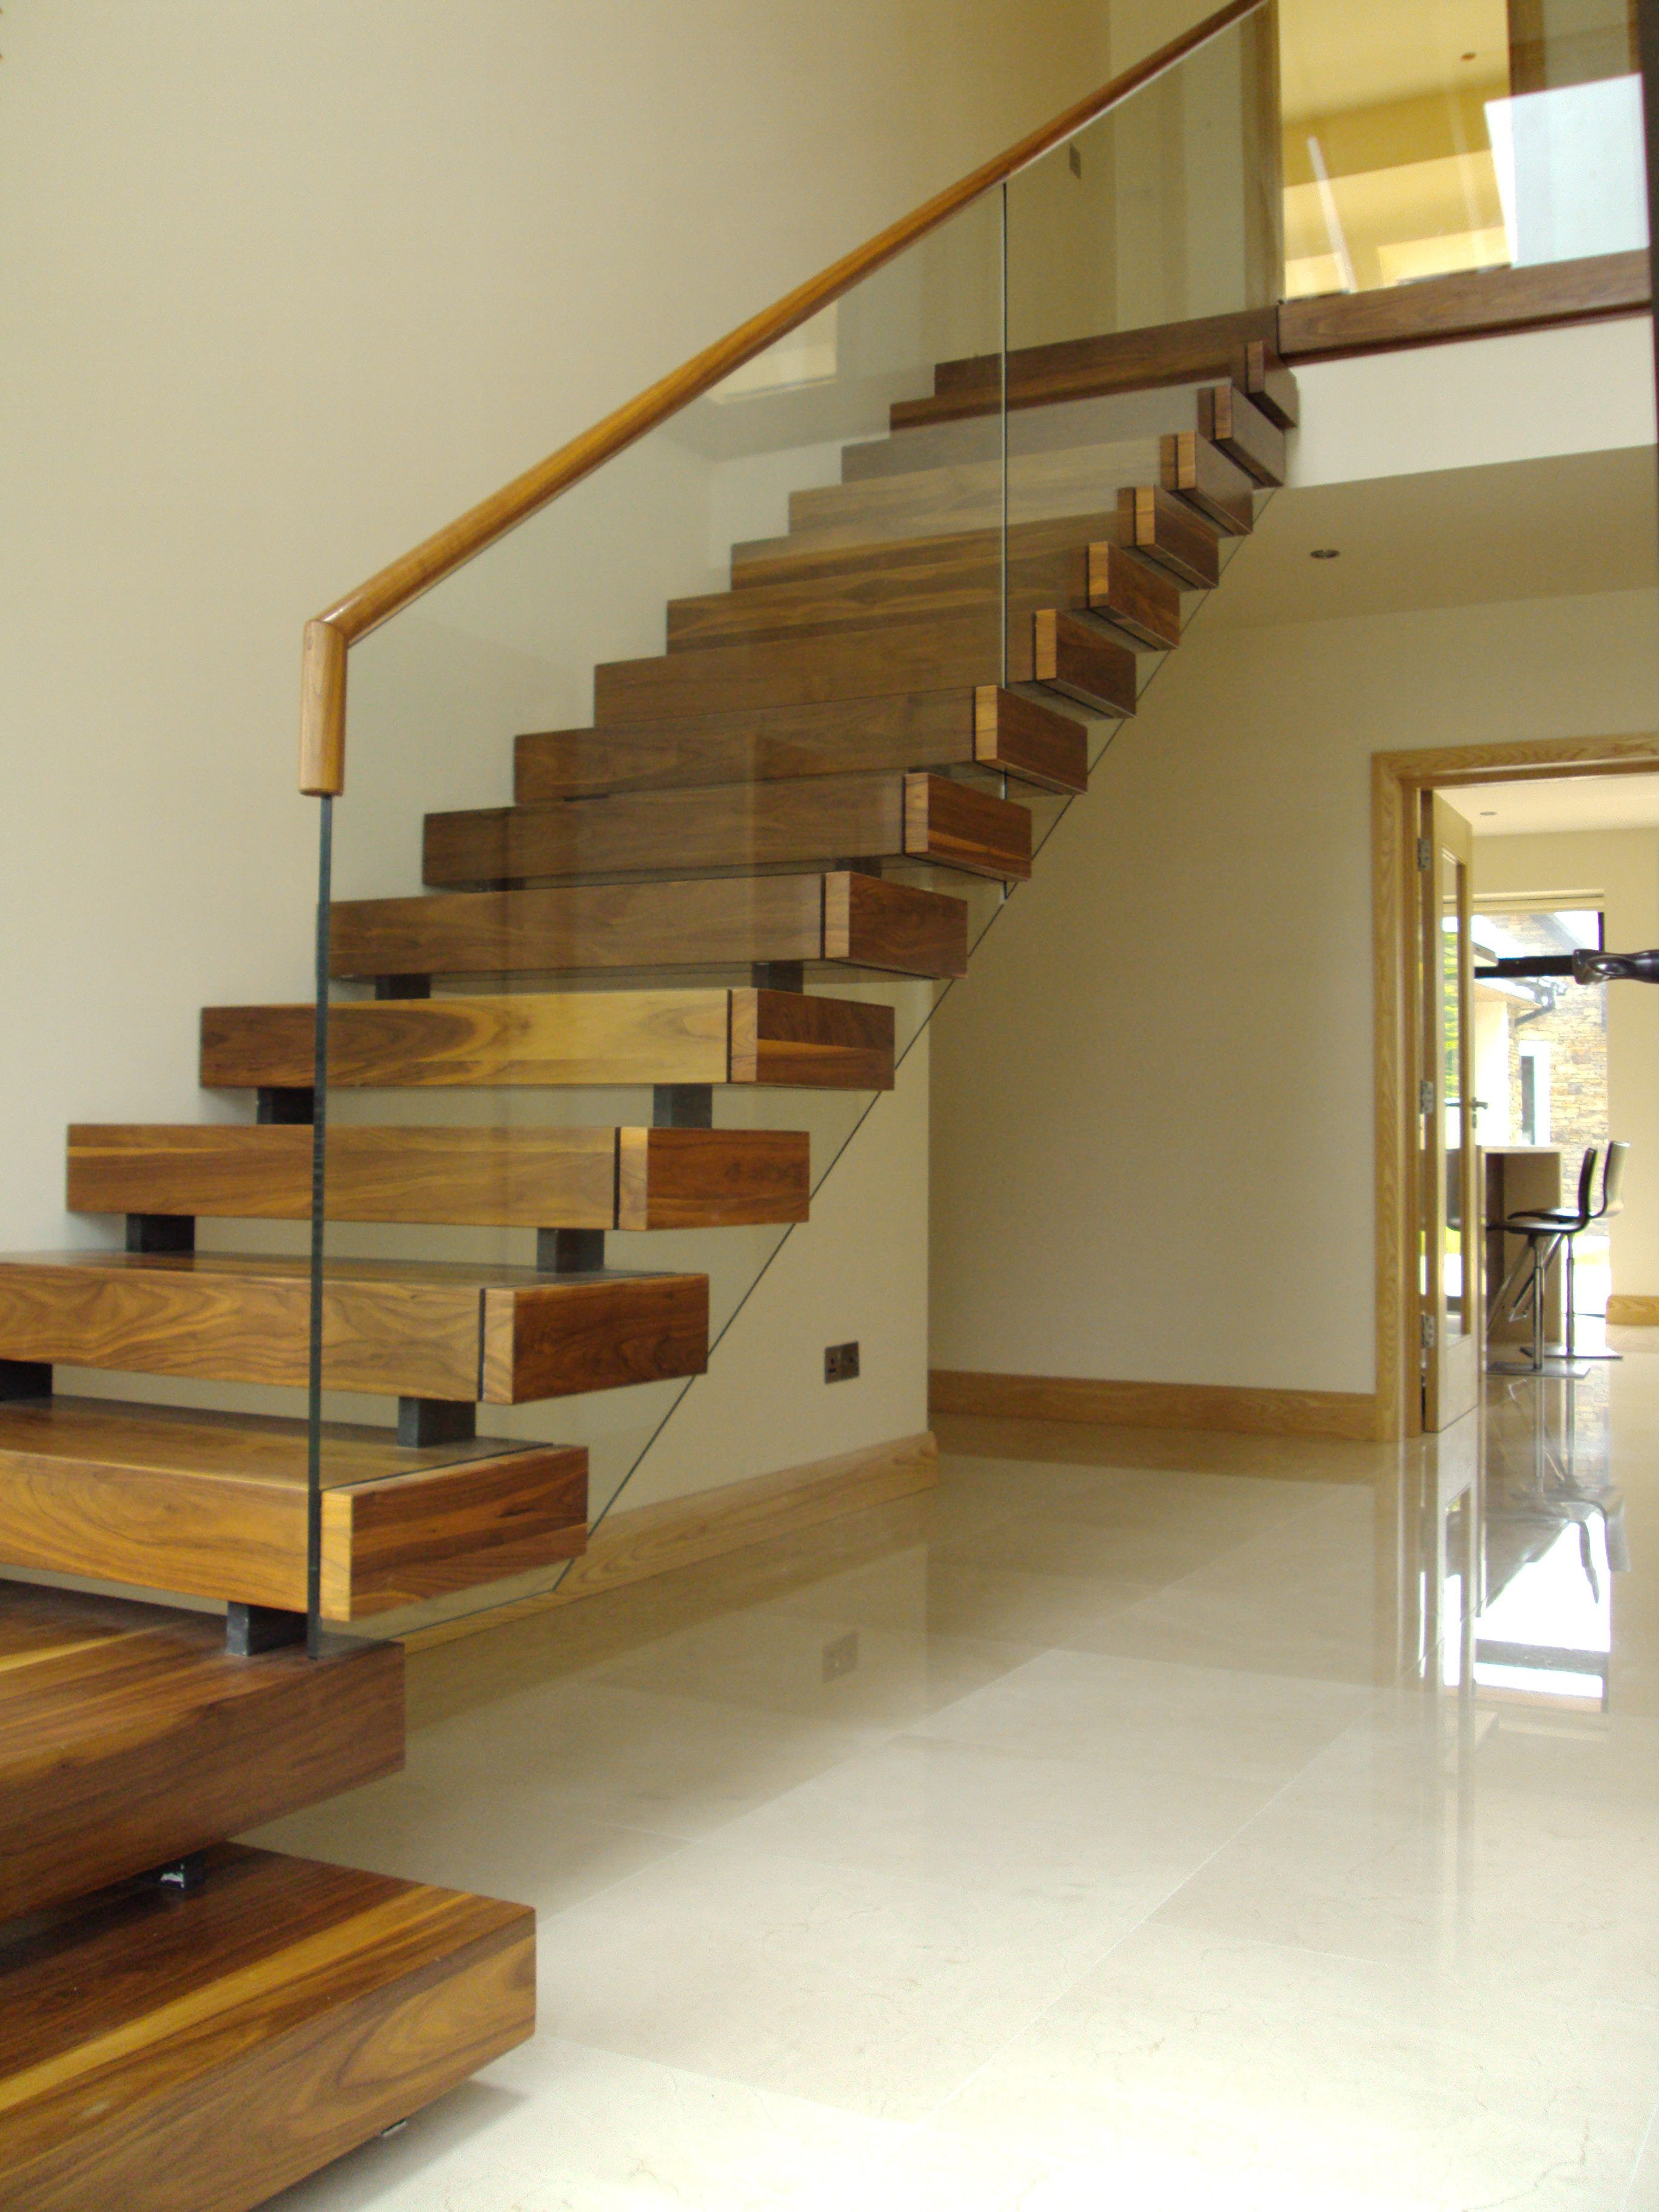 Open Staircase Design Open Staircase Designs Create A Sense Of Space In A Room Offset